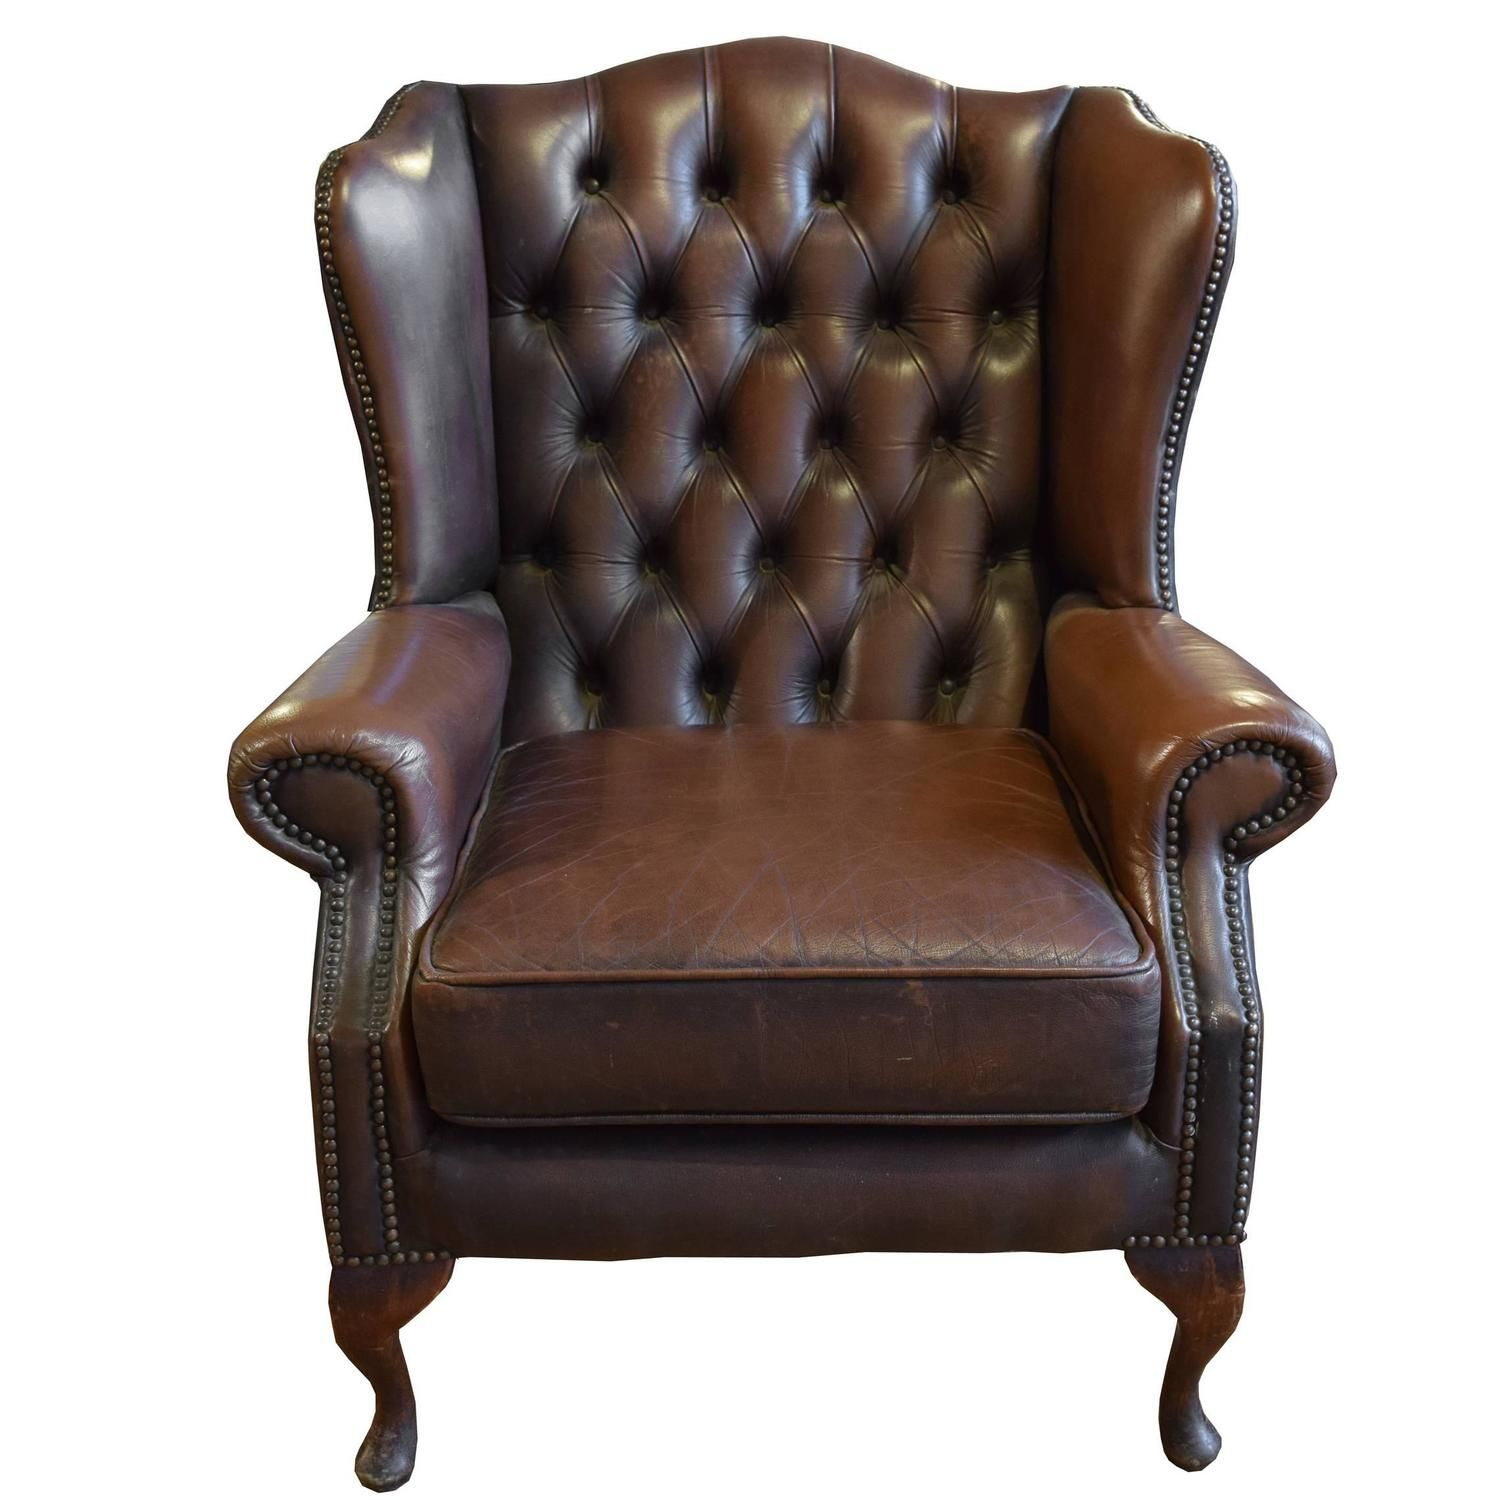 Everett Tufted Leather Settee In 2019: Tufted Leather Wing Chair